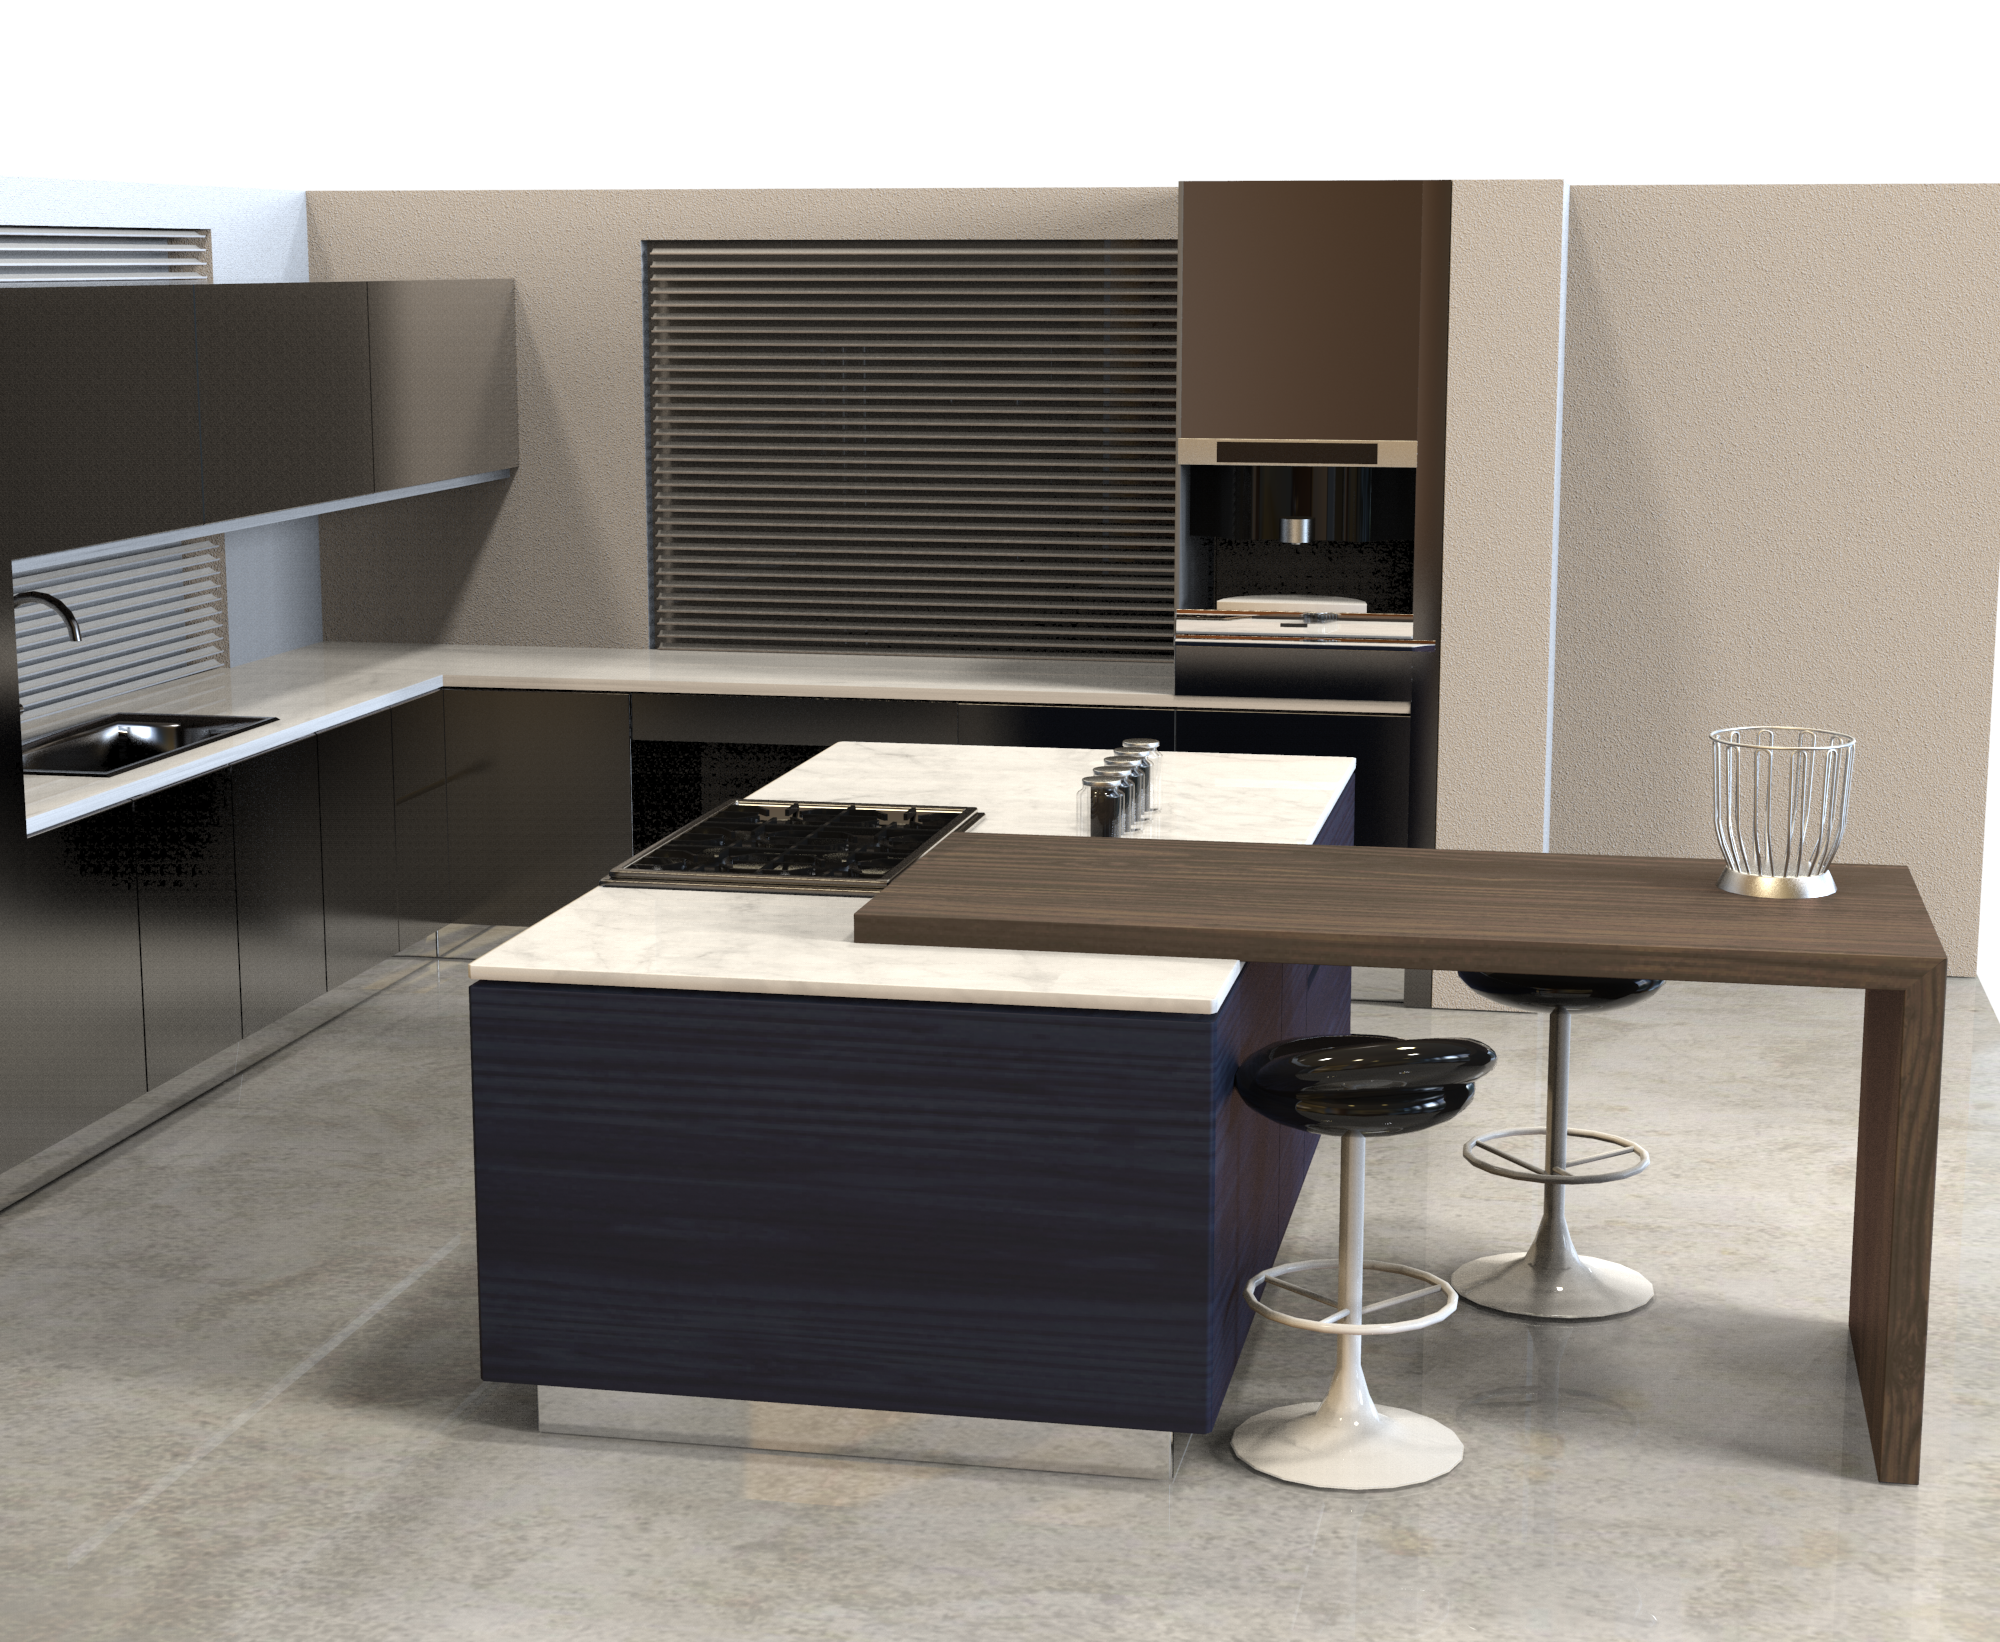 InteriorKitchen.320.png